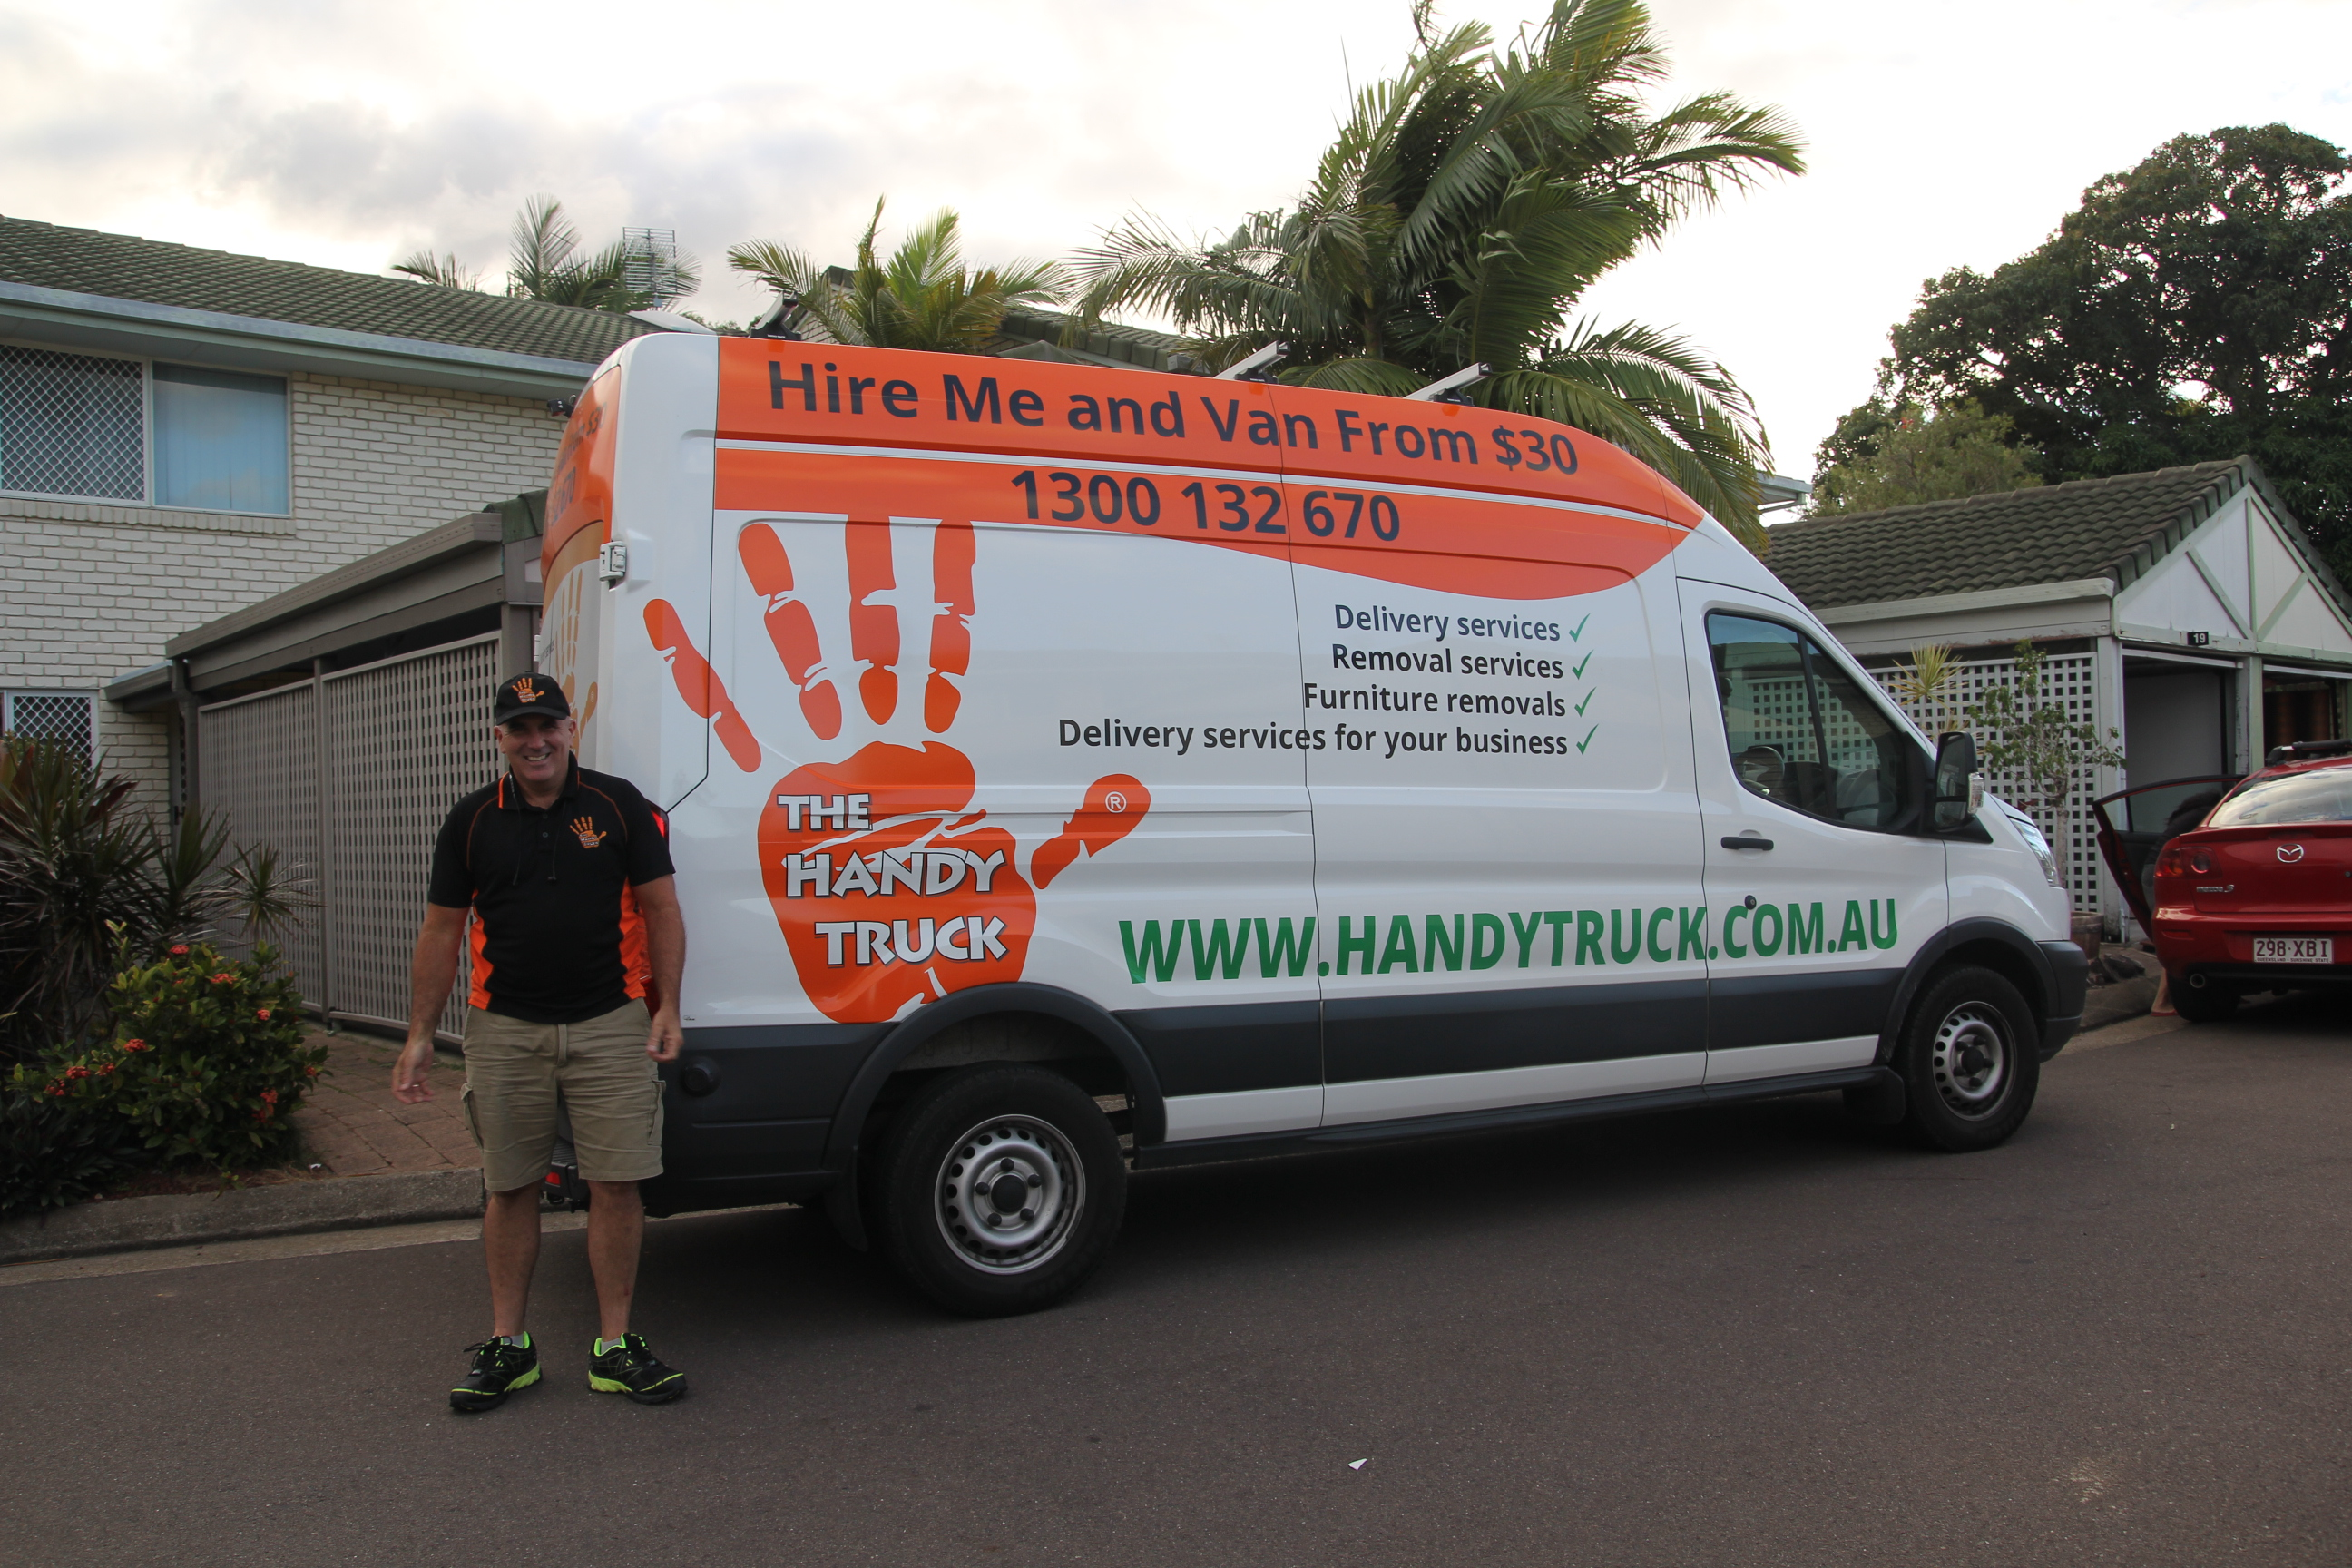 Your delivery and removalist service in Sunshine Coast